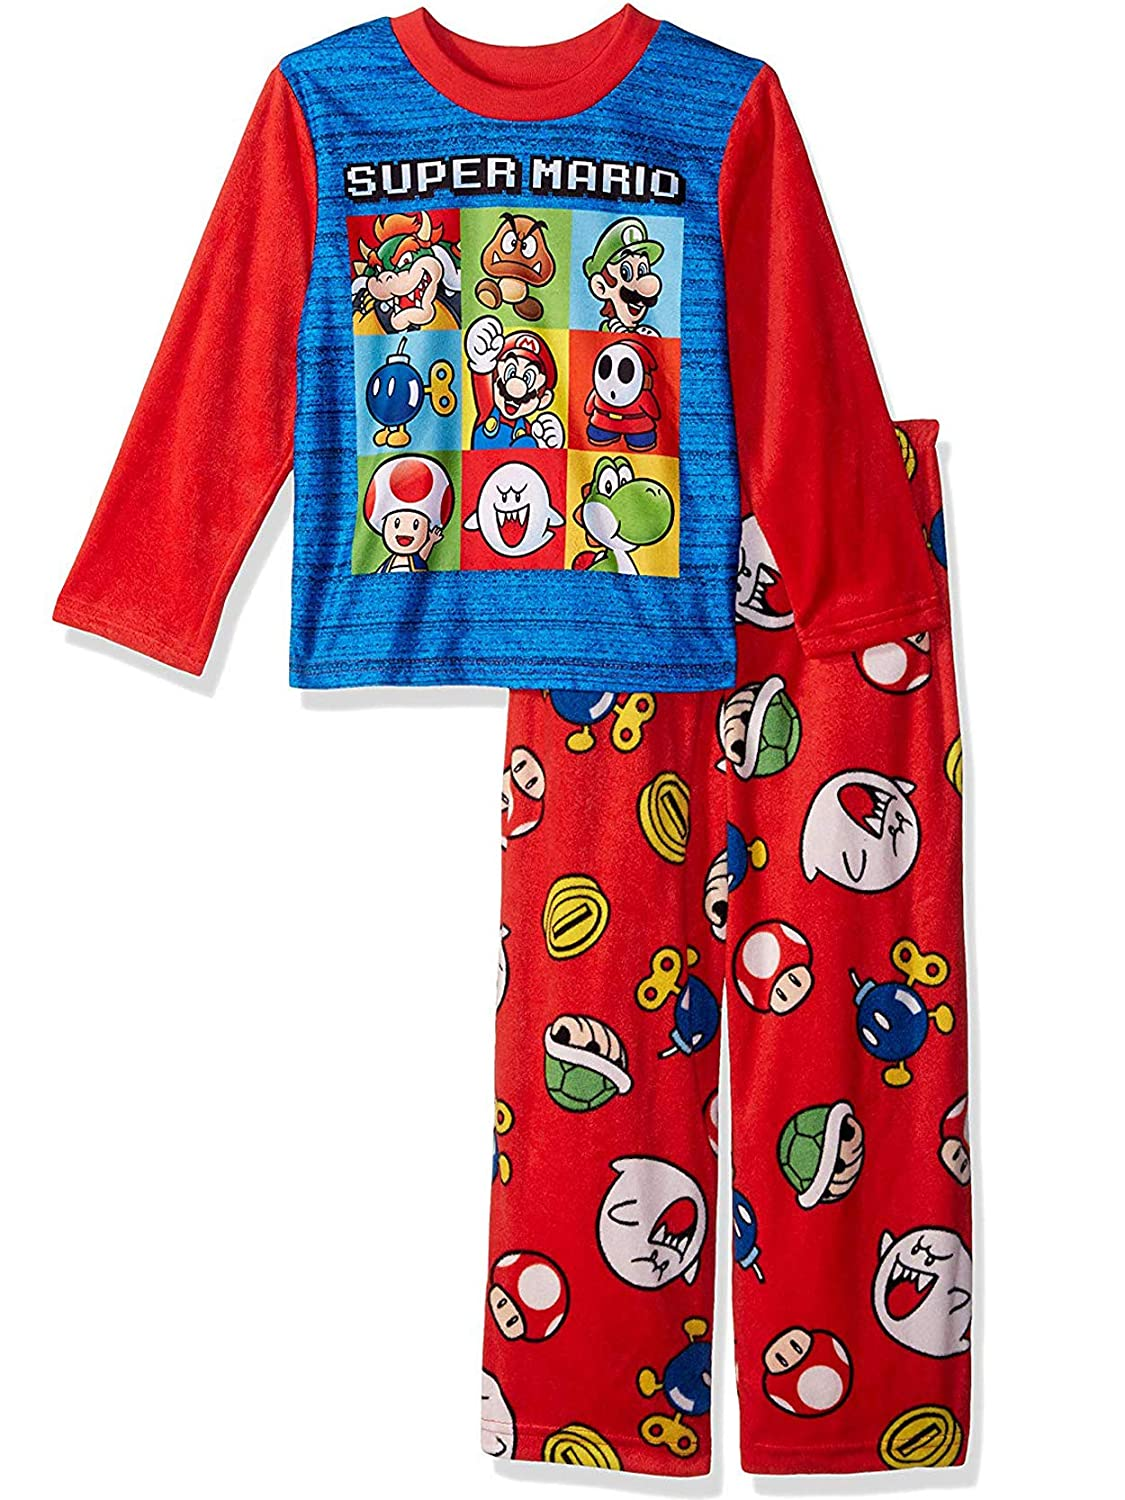 Super Mario Boys Long Sleeve 2-Piece Fleece Pajamas Set manufacturer